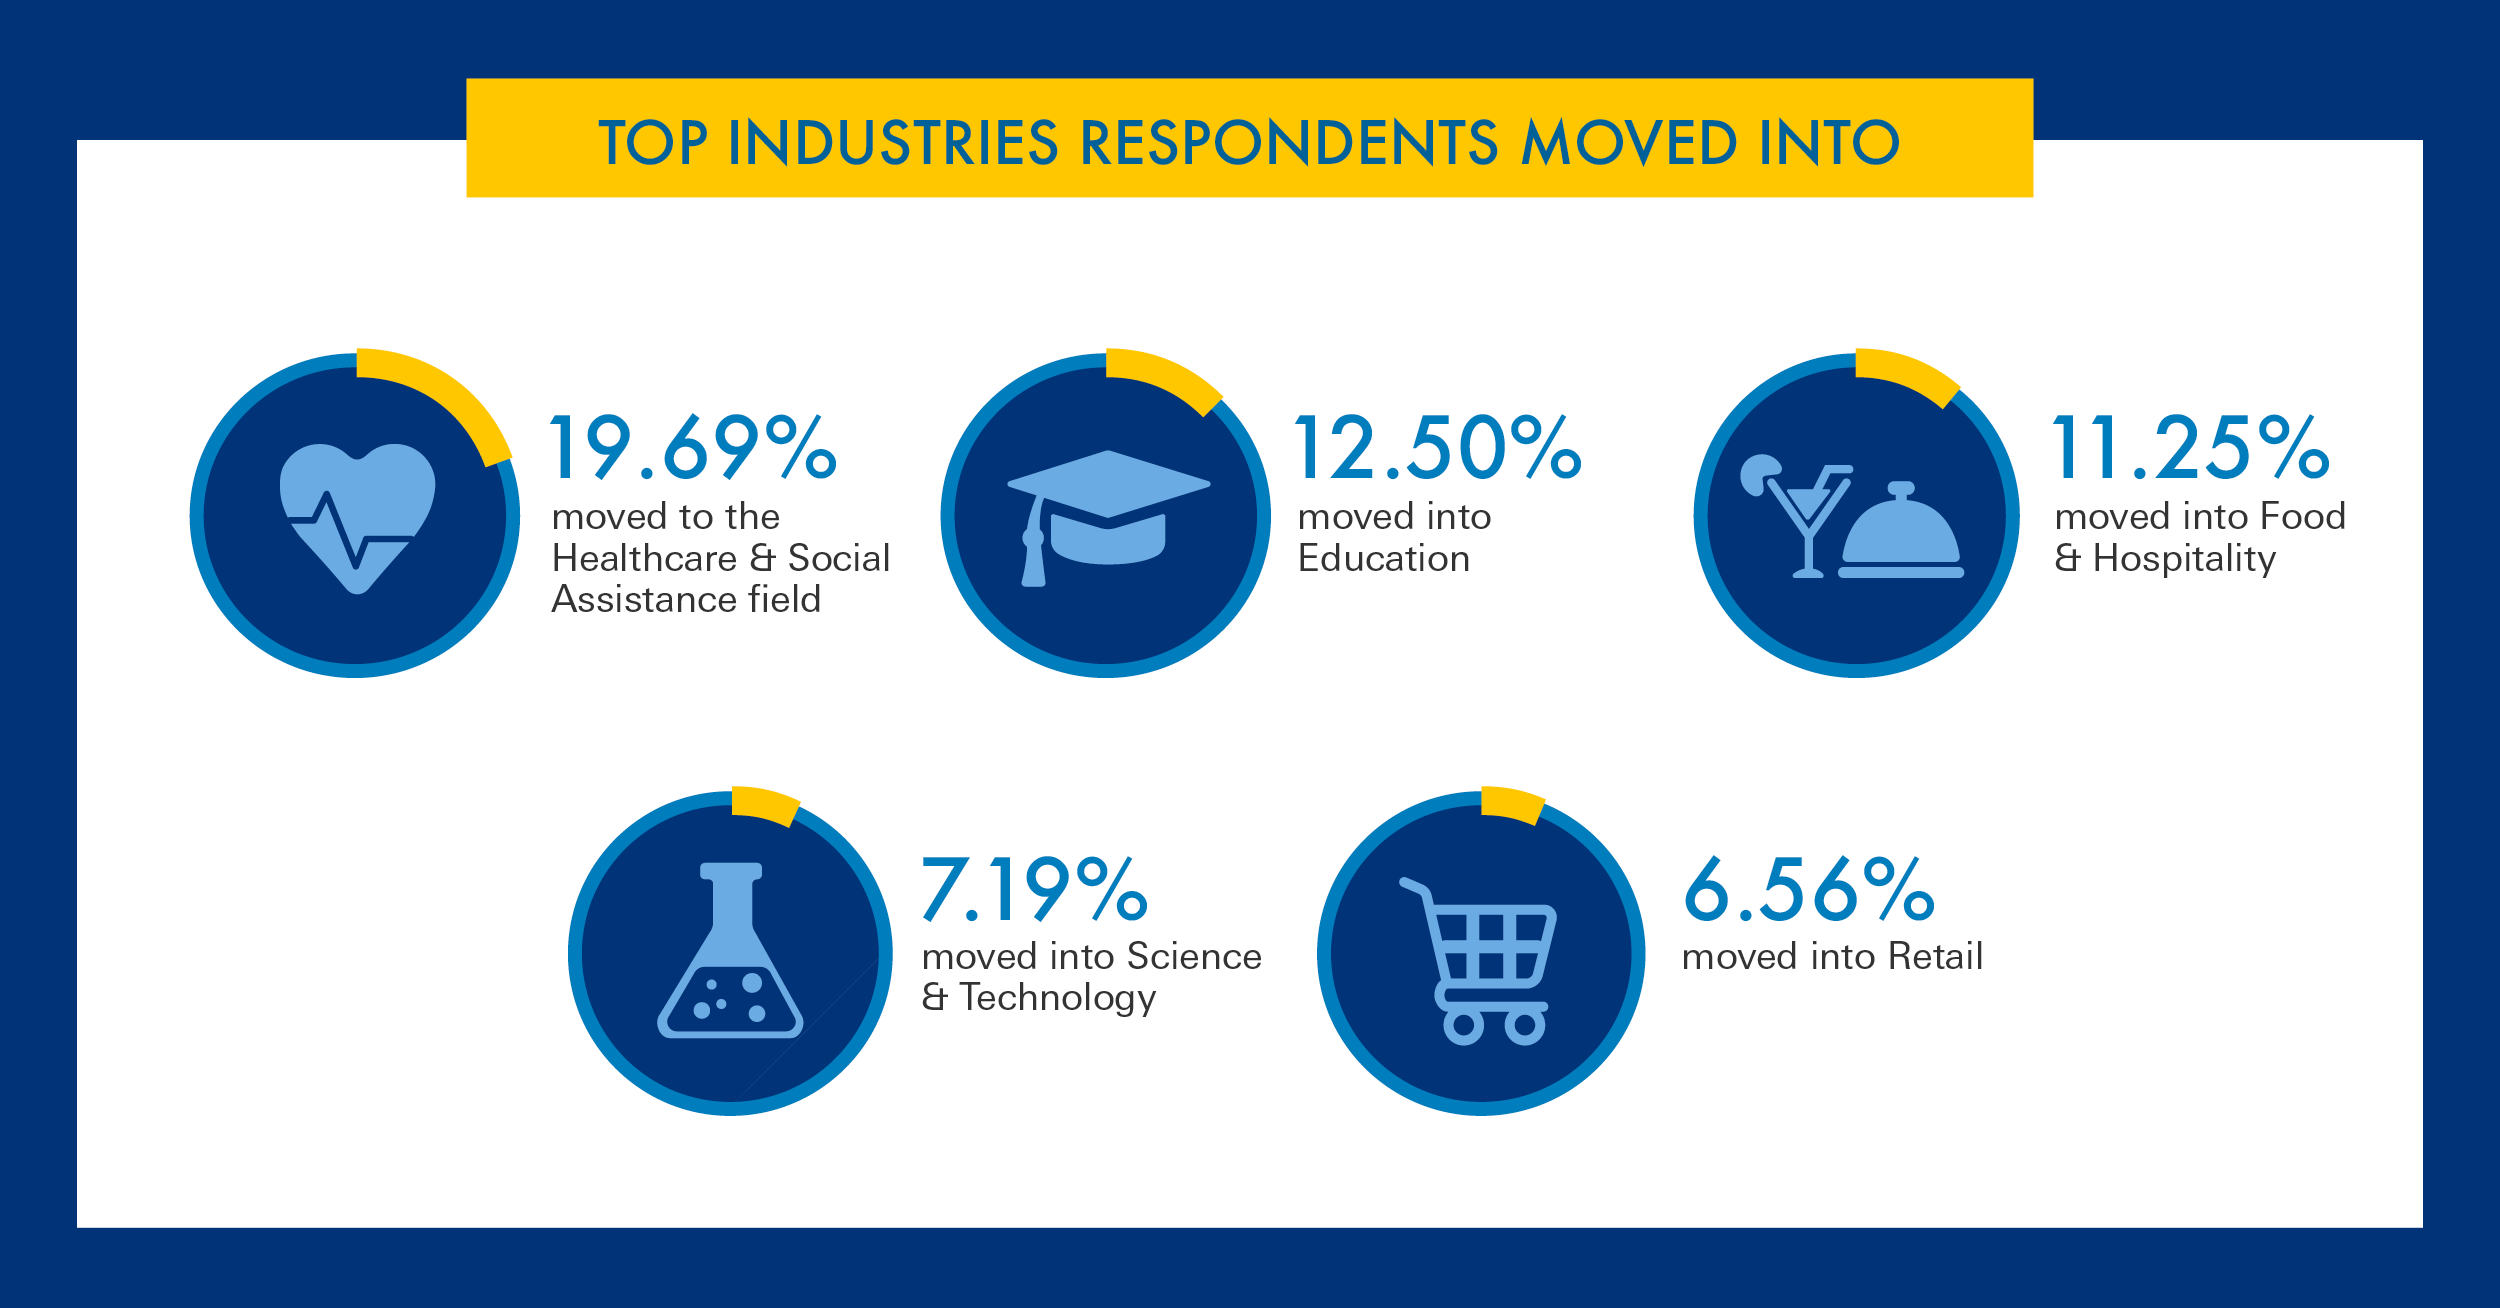 Top industries respondents moved into